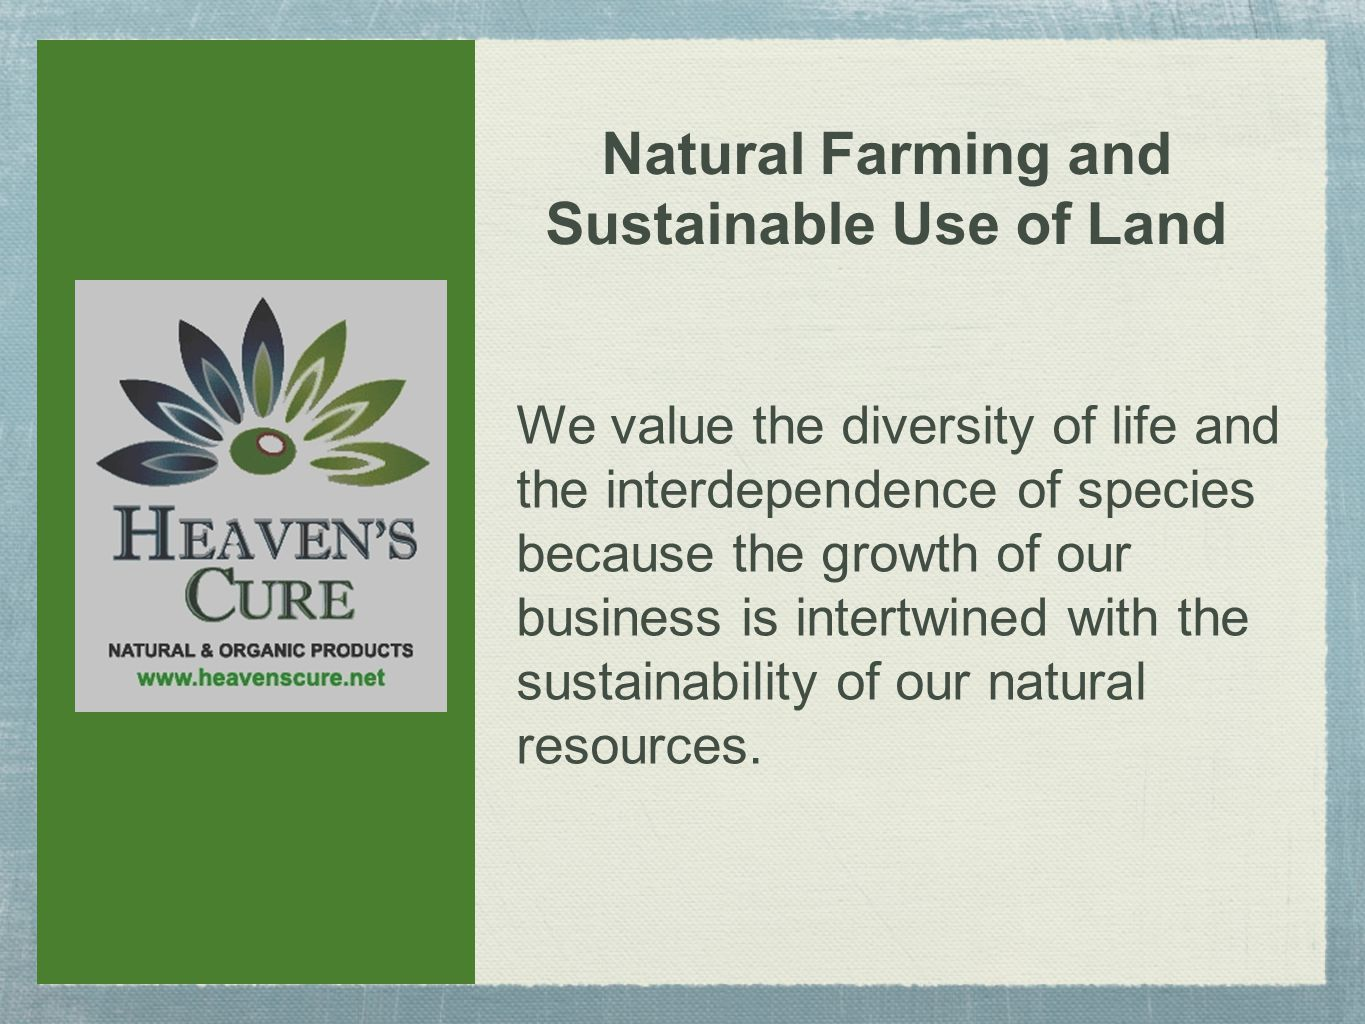 We value the diversity of life and the interdependence of species because the growth of our business is intertwined with the sustainability of our natural resources.